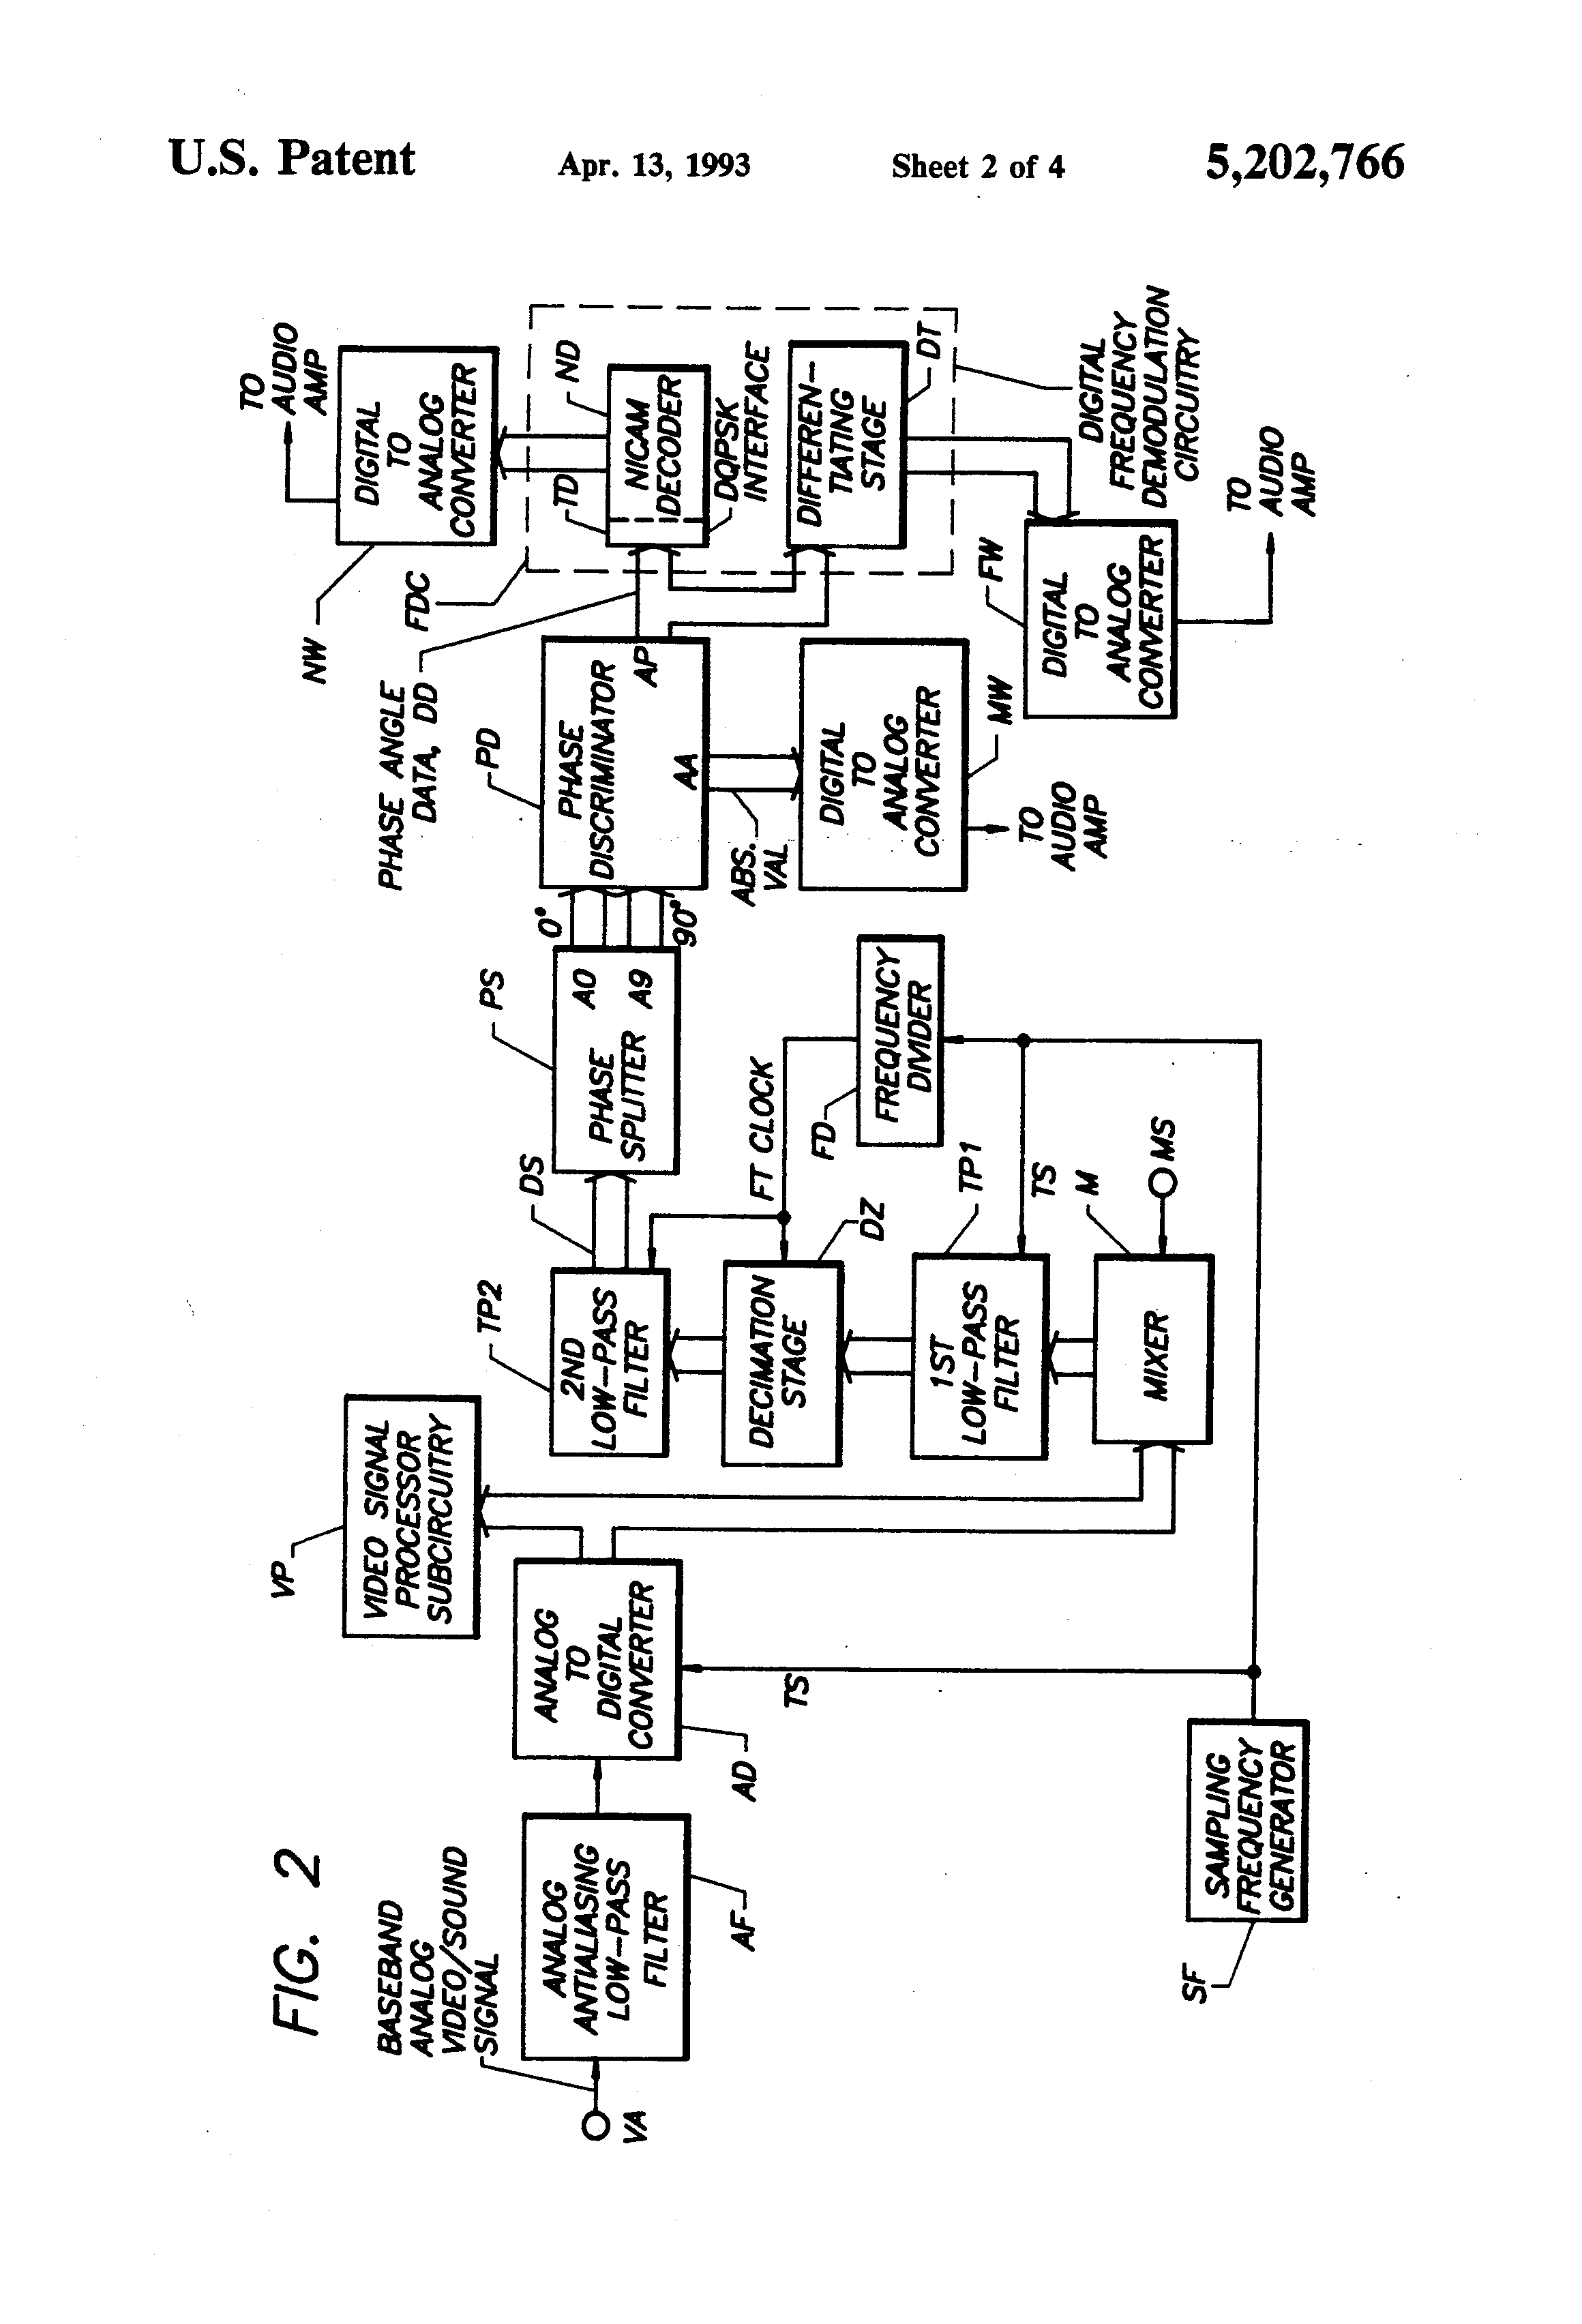 Patent Us5202766 Sound Channel Circuit For Digital Television Block Diagram Of An Analogue Uhf Tv Receiver Drawing